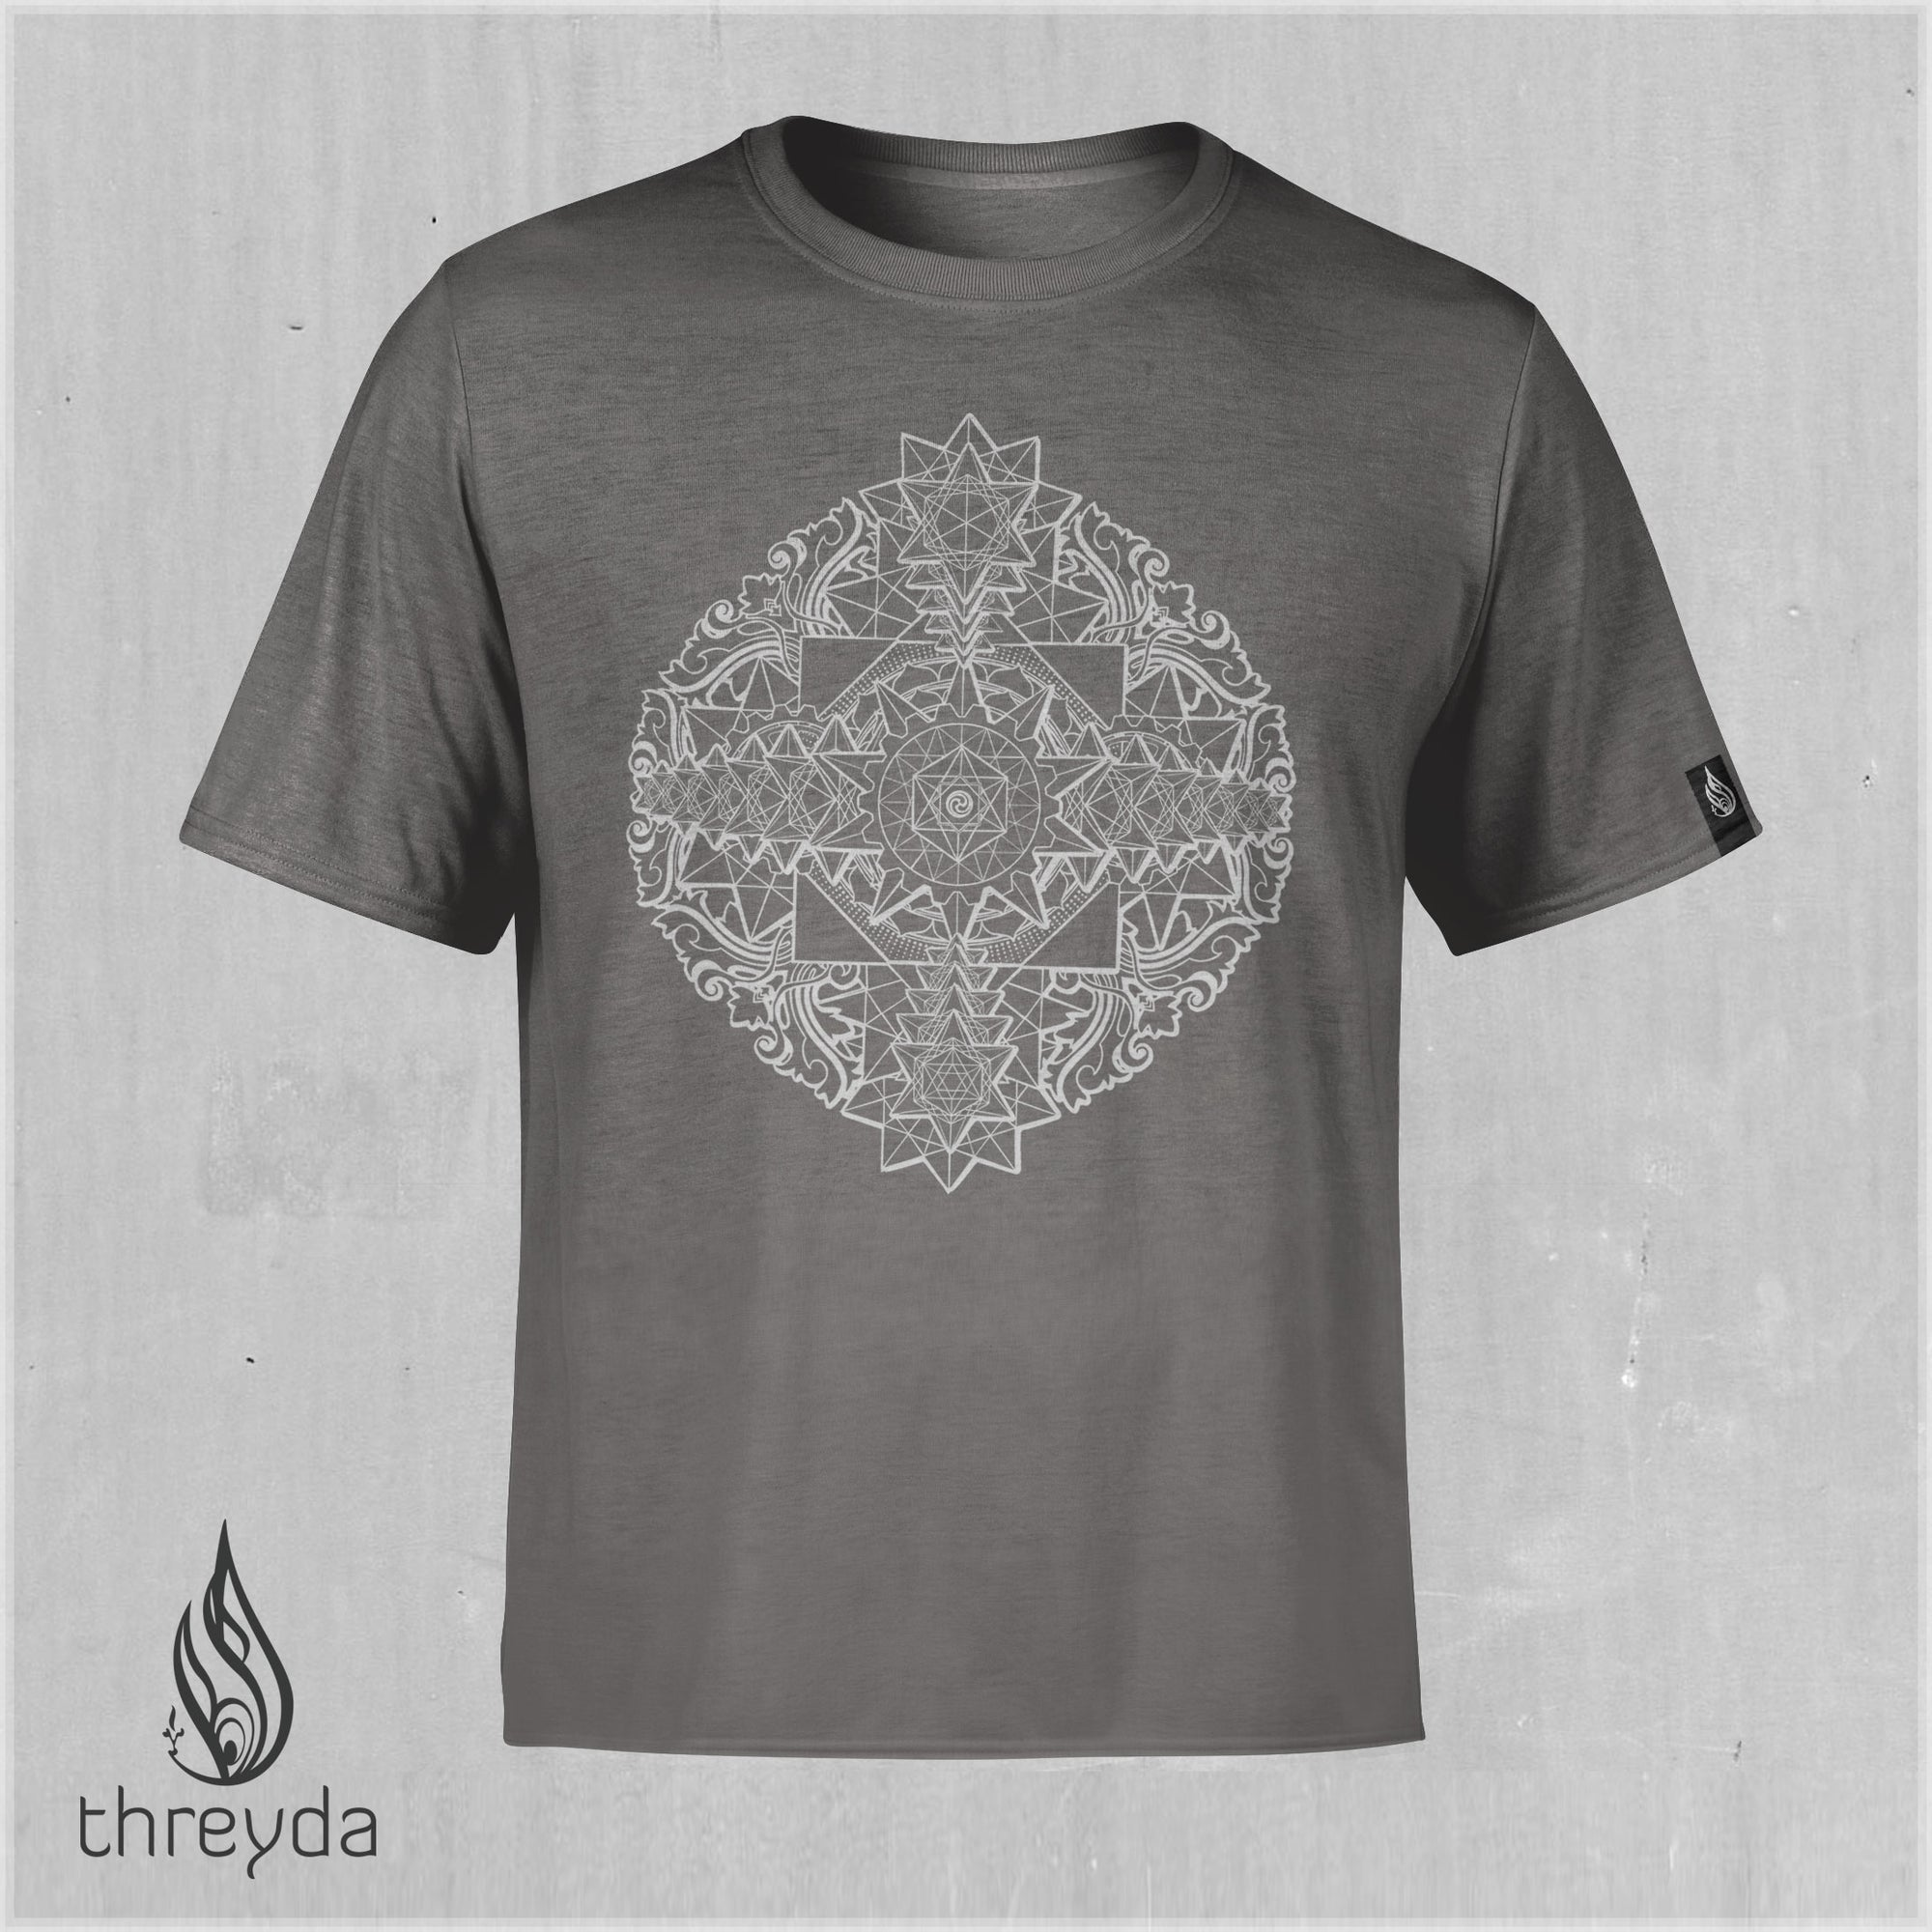 Sri Yantra Light Screenprint Tee by Kimi Takemura